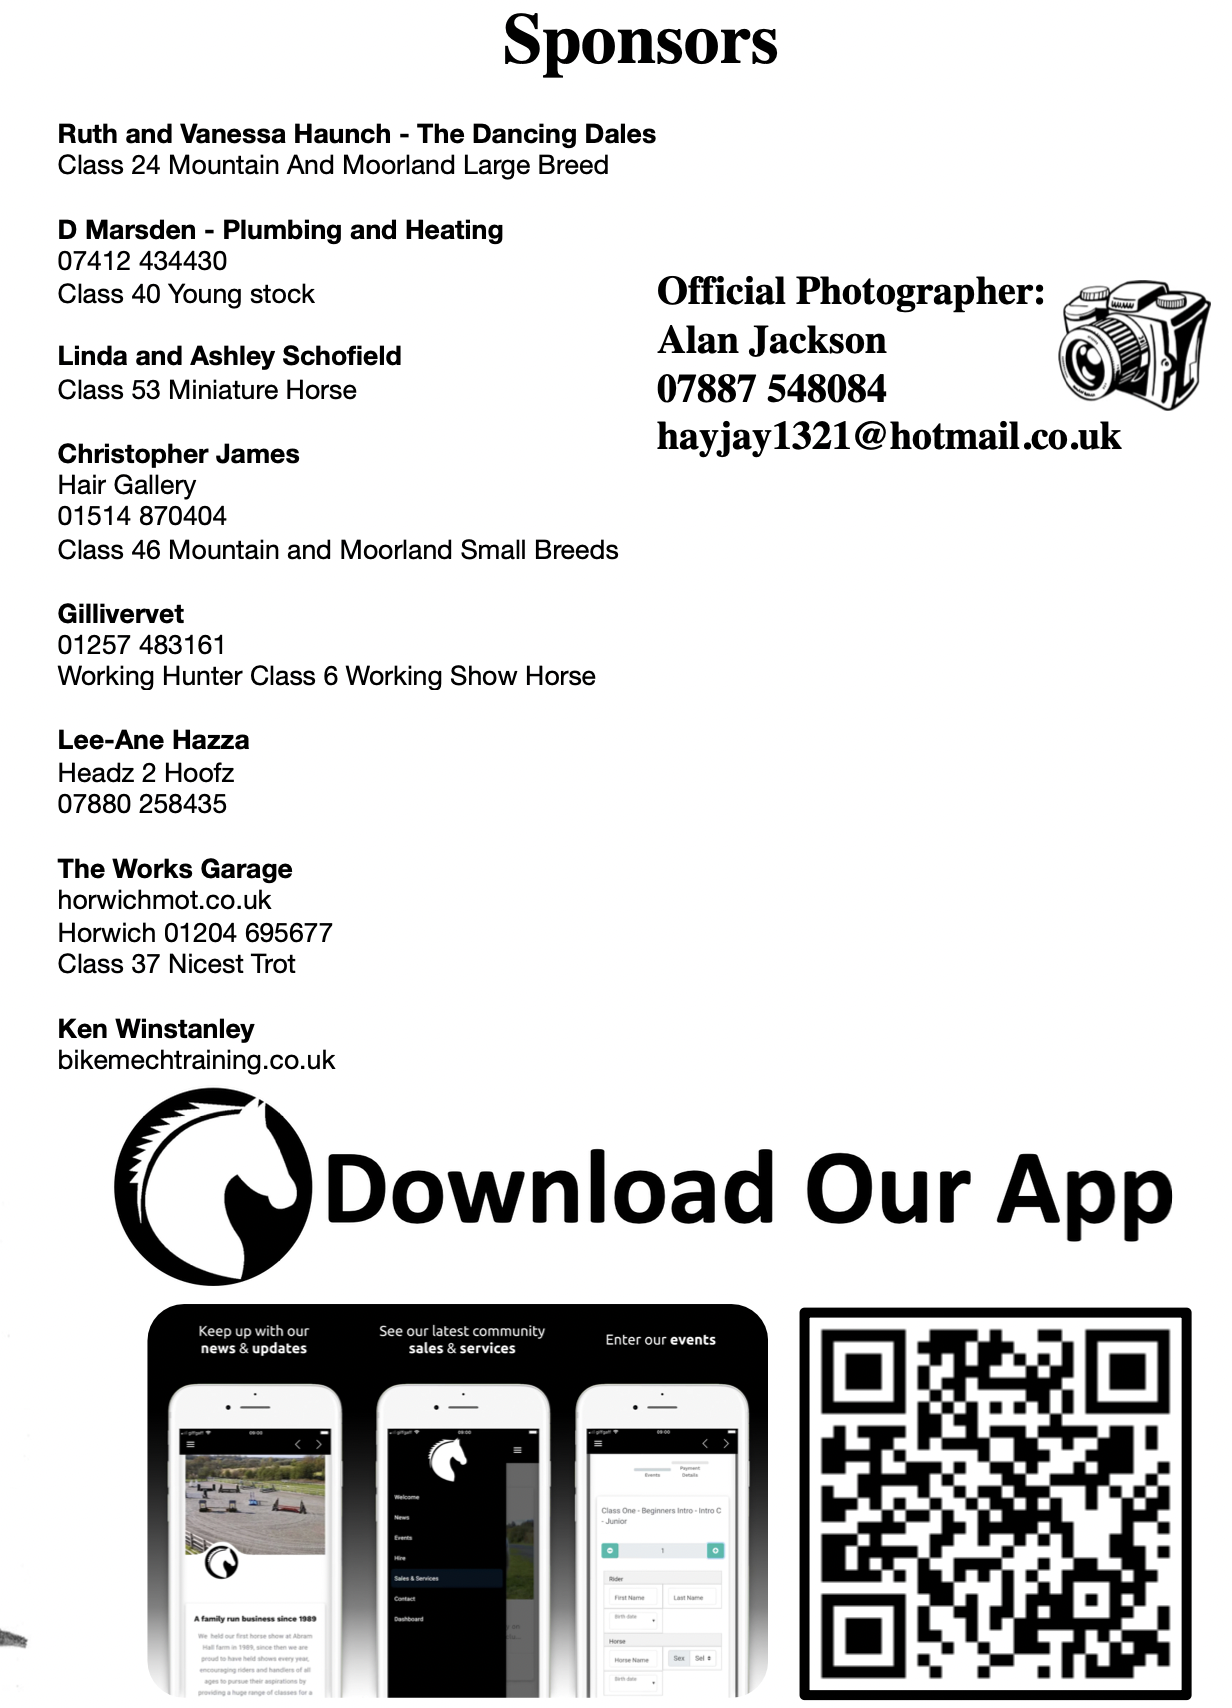 Thank you to o0ur sponsors for your support this season.